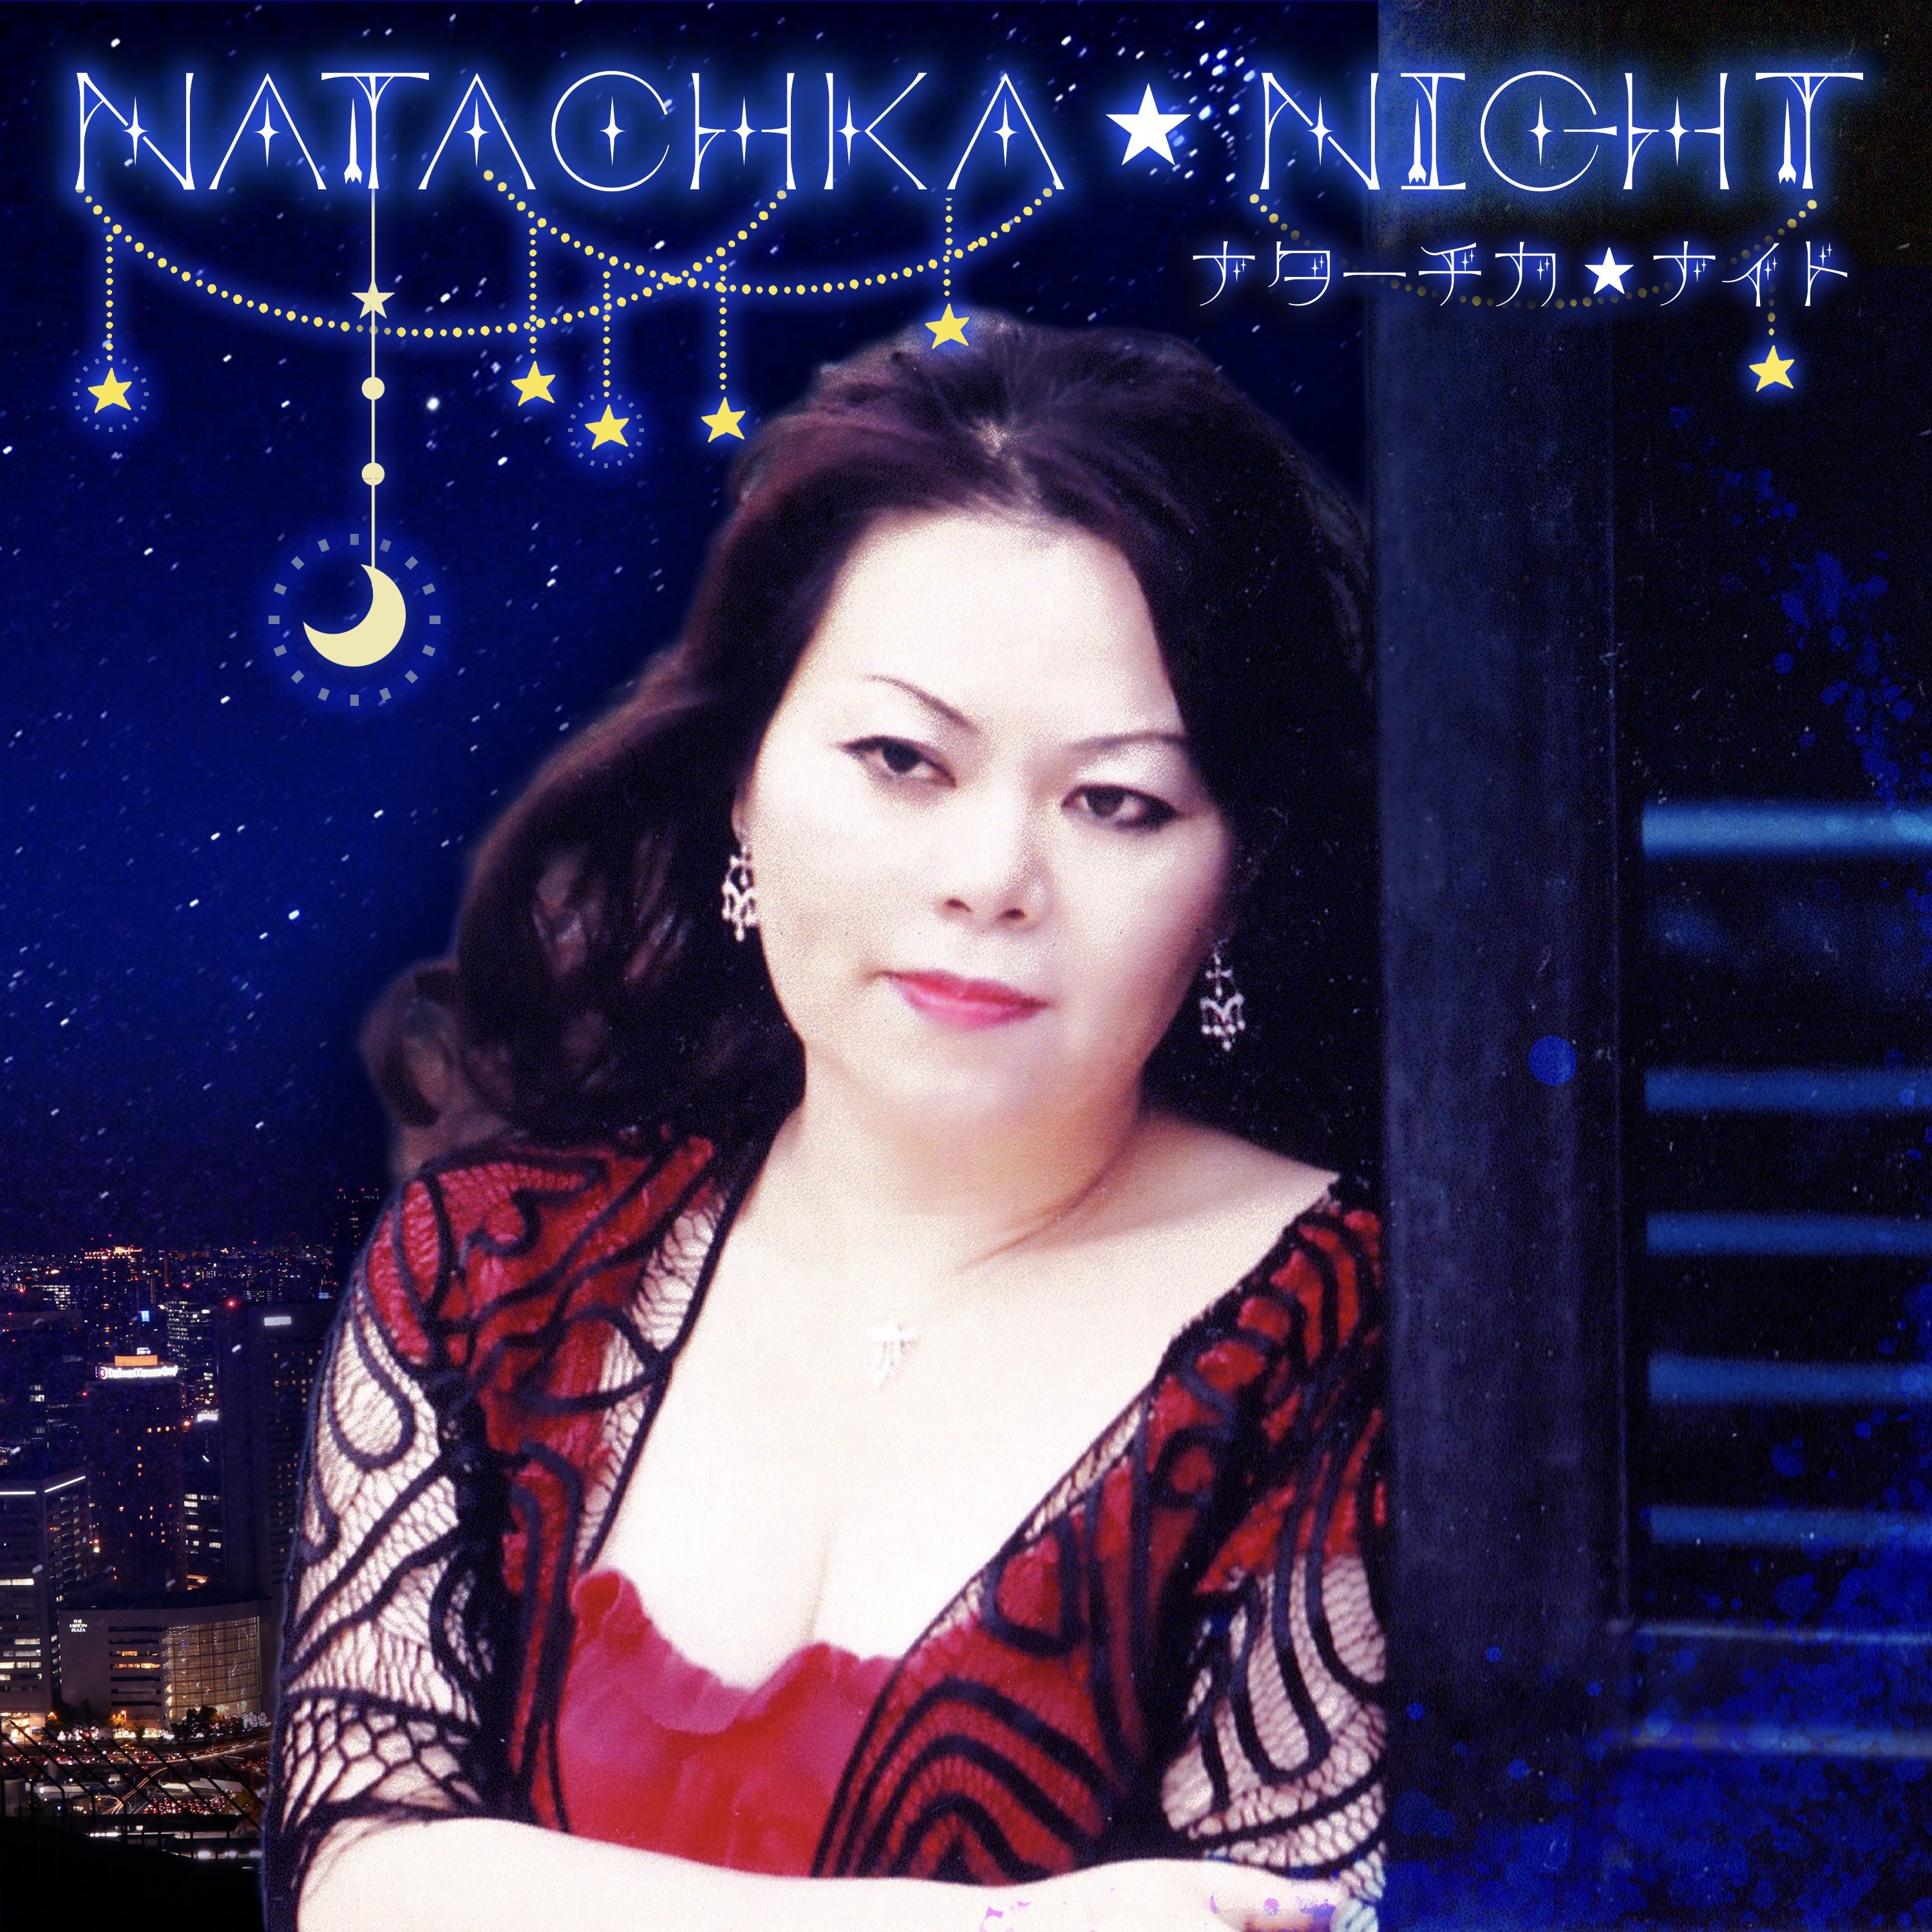 Natachka Night